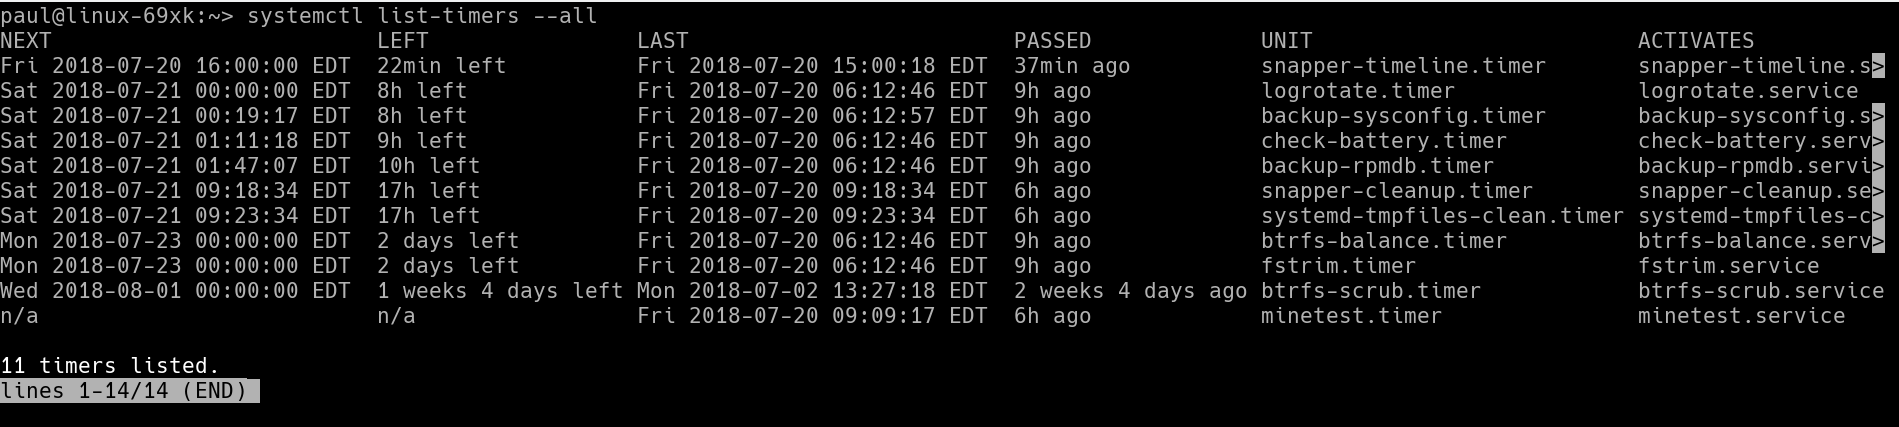 Setting Up a Timer with systemd in Linux - Linux com